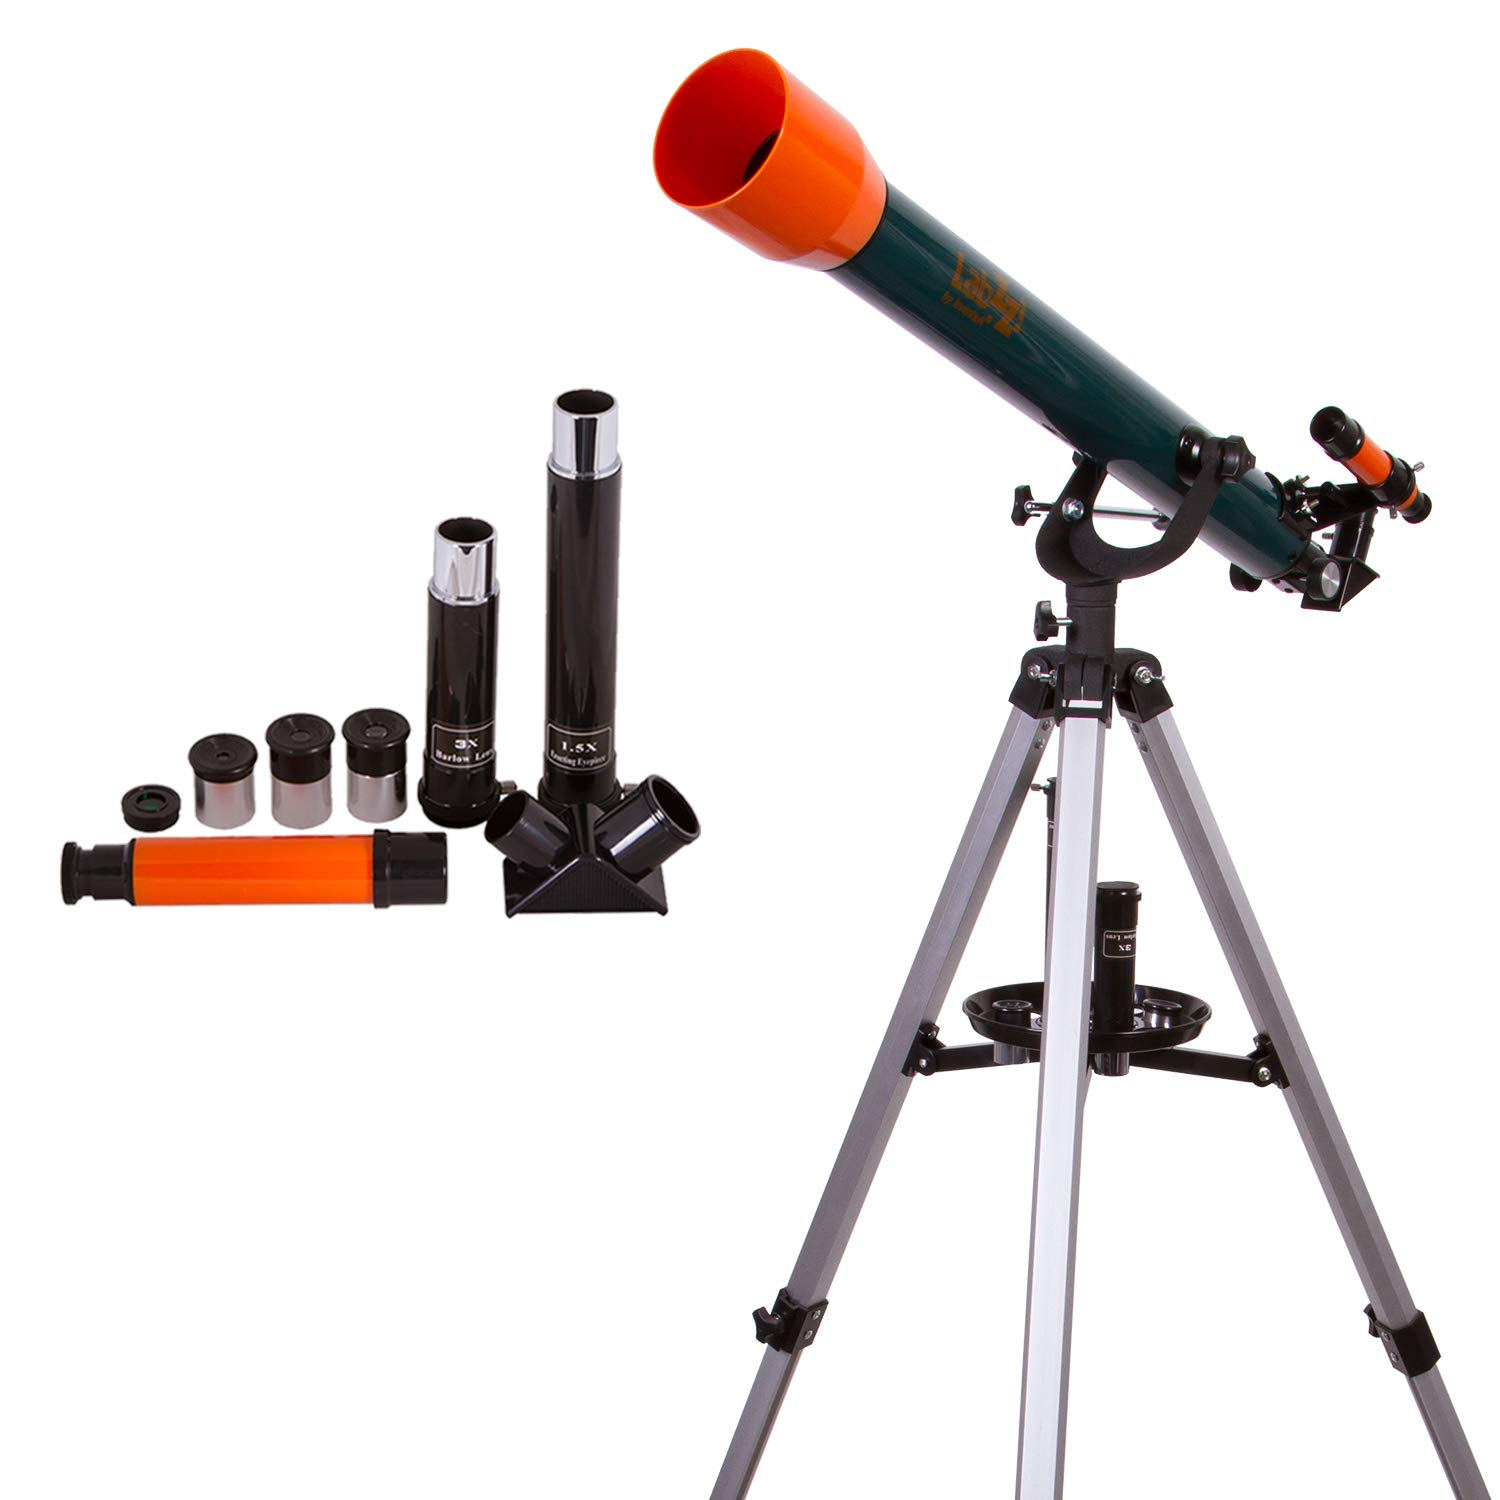 Levenhuk LabZZ T3 Refractor Telescope for Beginners with Up to 175x Magnification Power and Accessory Kit by Levenhuk